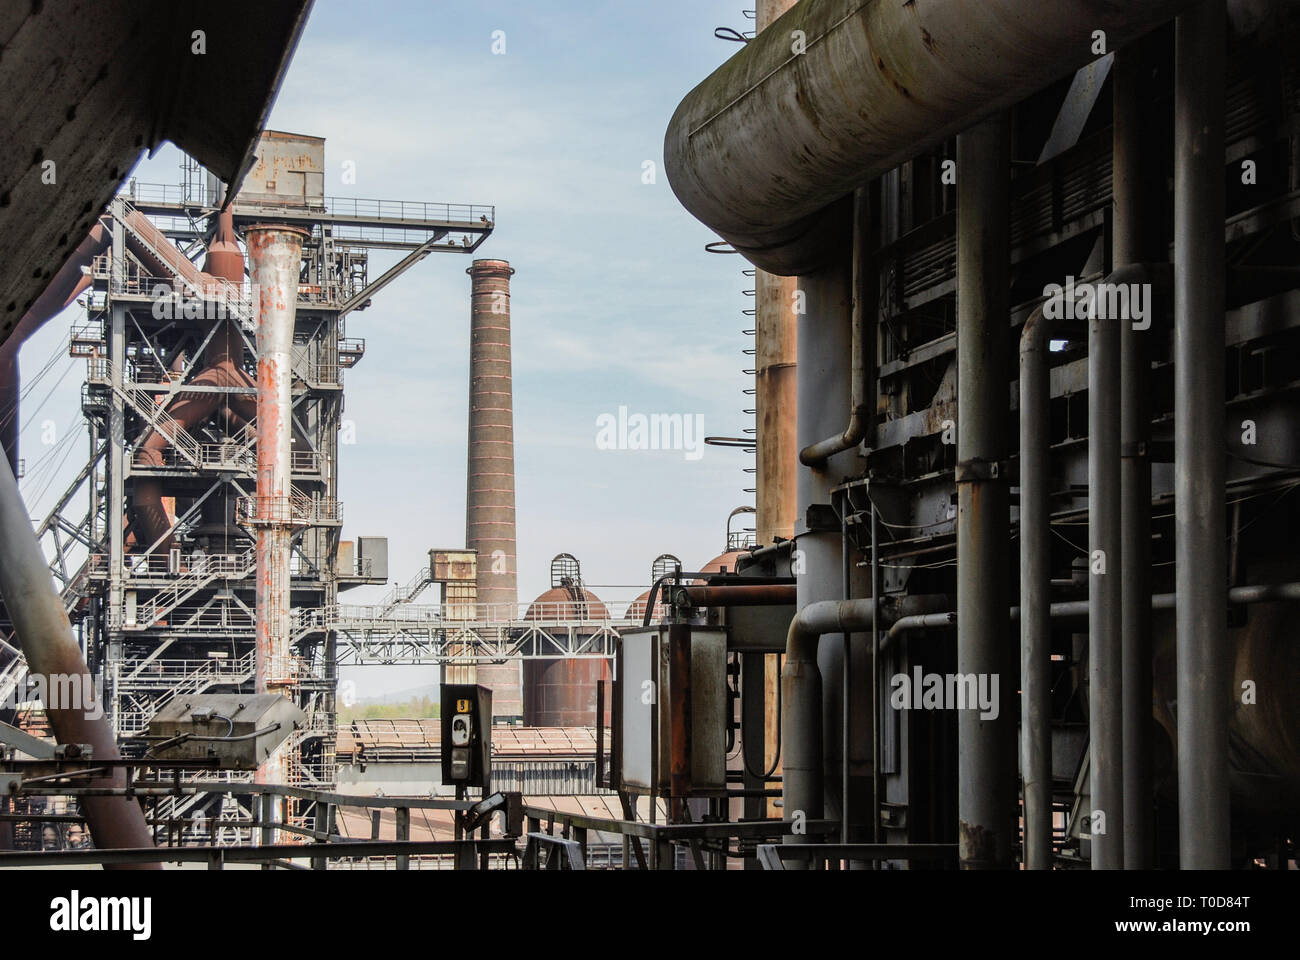 Landschaftspark Nord, Duisburg, Germany - 24 April 2010. Detail of decommissioned furnace in the Ruhr area. - Stock Image